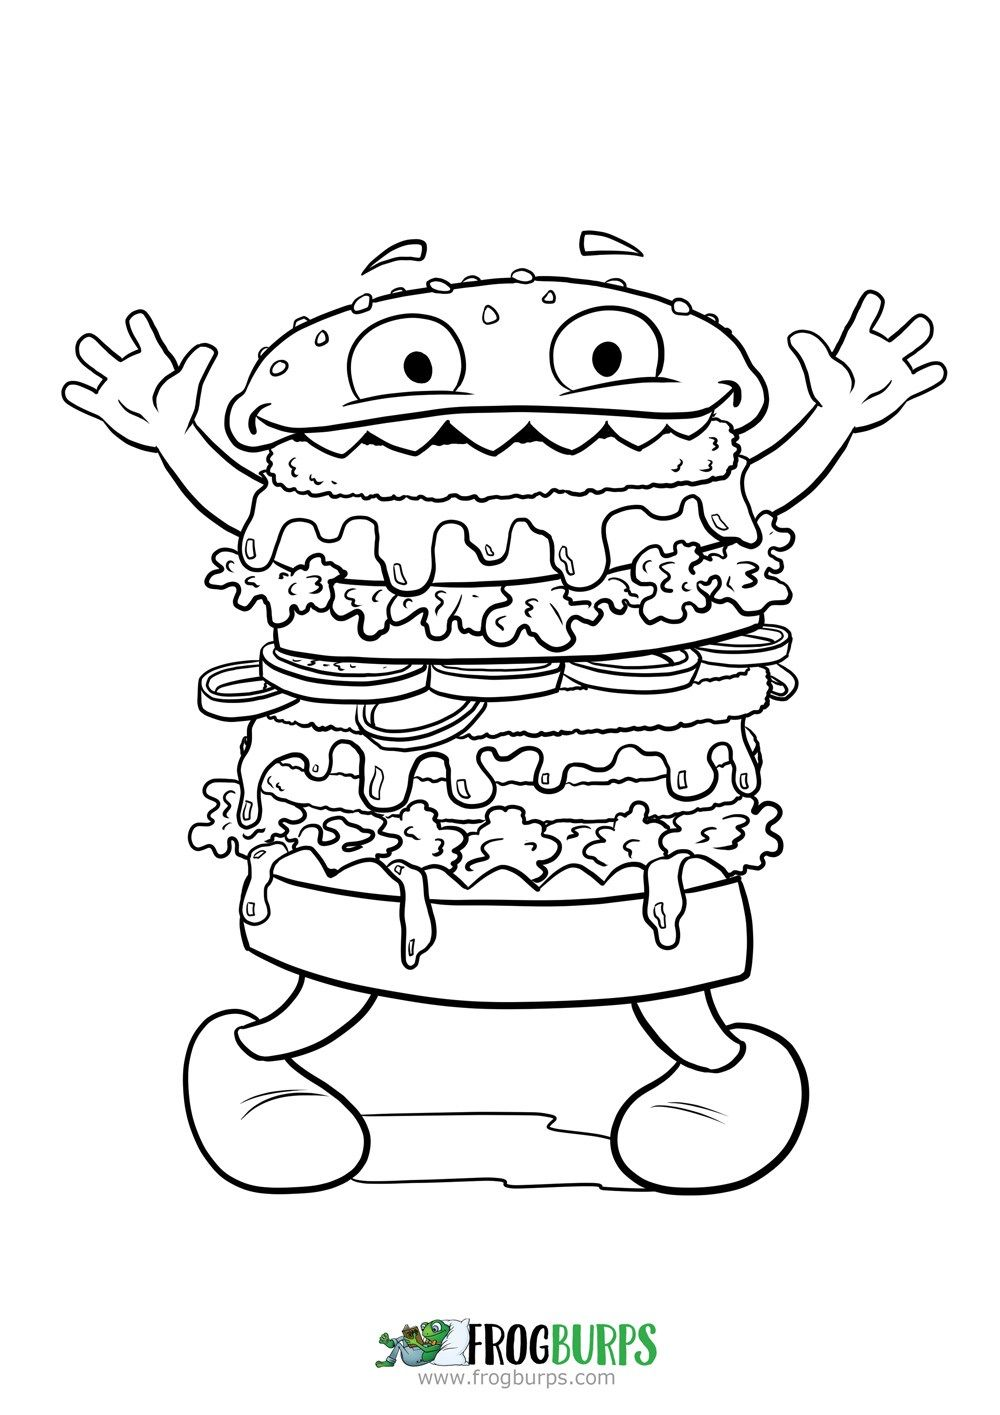 Silly Burger Monster Monster Coloring Pages Coloring Pages